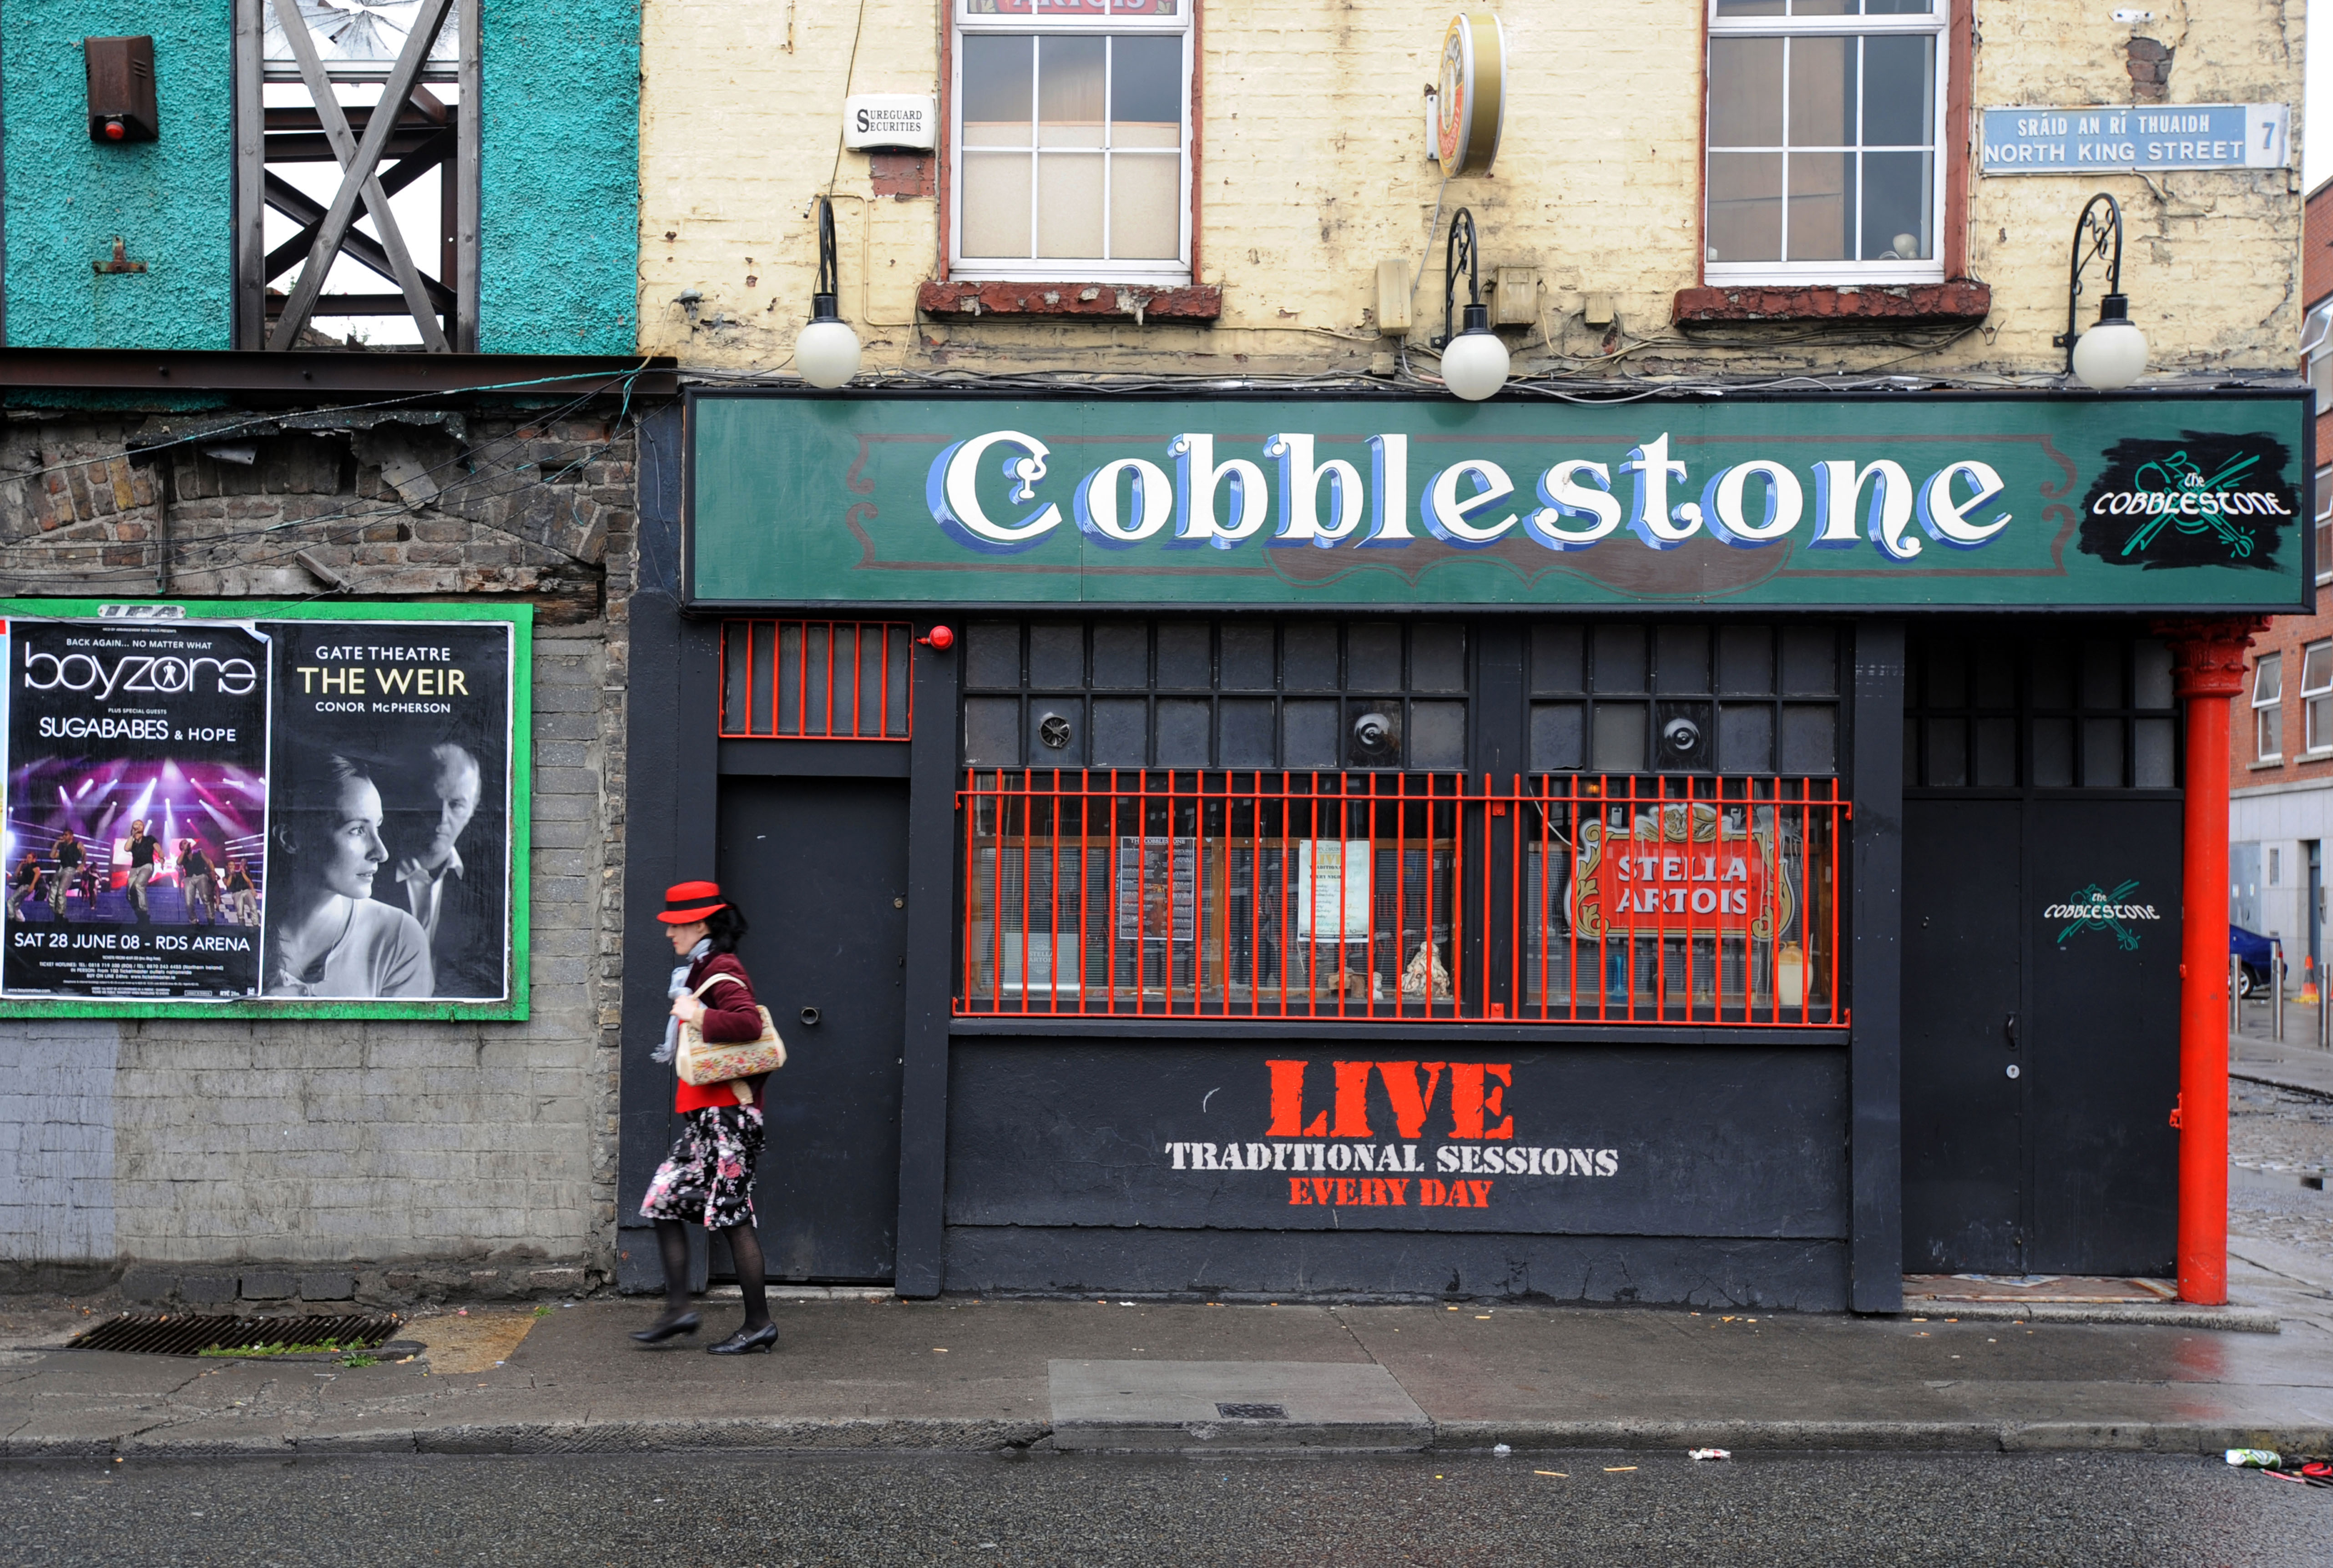 The Cobblestone pub in Smithfield Dublin Ireland. Image shot 07/2008. Exact date unknown.